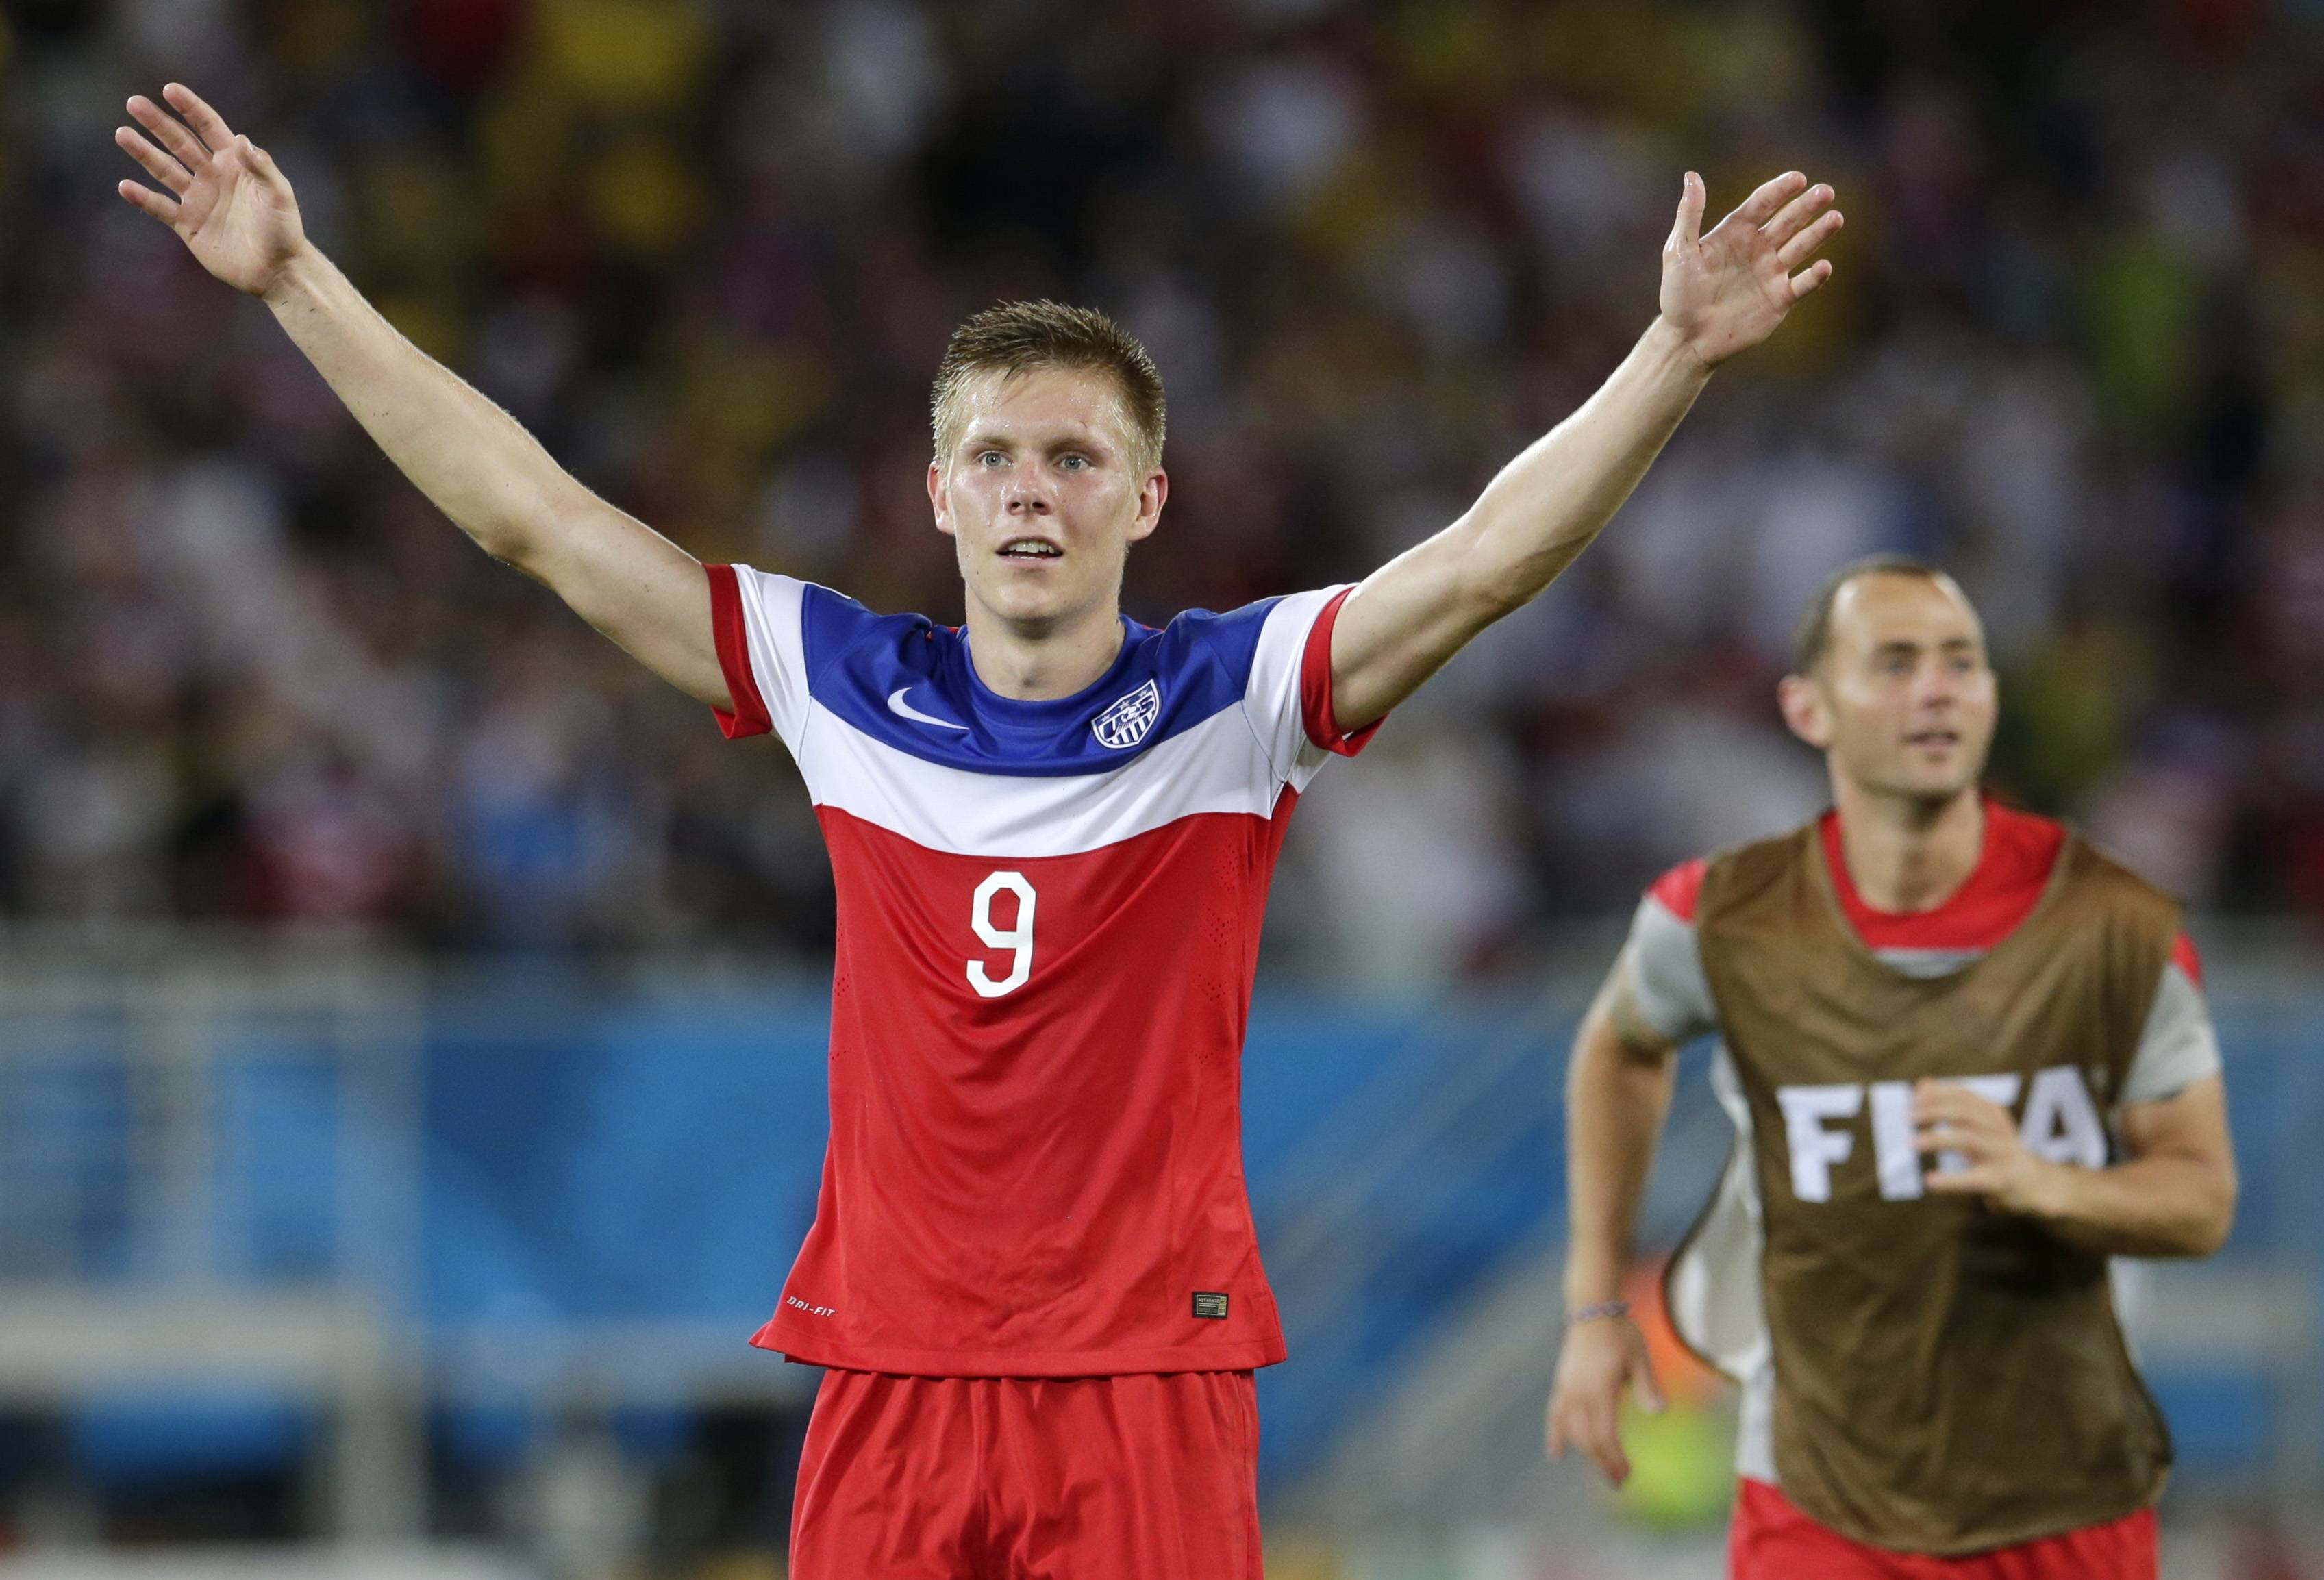 United States' Aron Johannsson celebrates his team's 2-1 victory over Ghana during the group G World Cup soccer match between Ghana and the United States at the Arena das Dunas in Natal, Brazil, Monday, June 16, 2014.